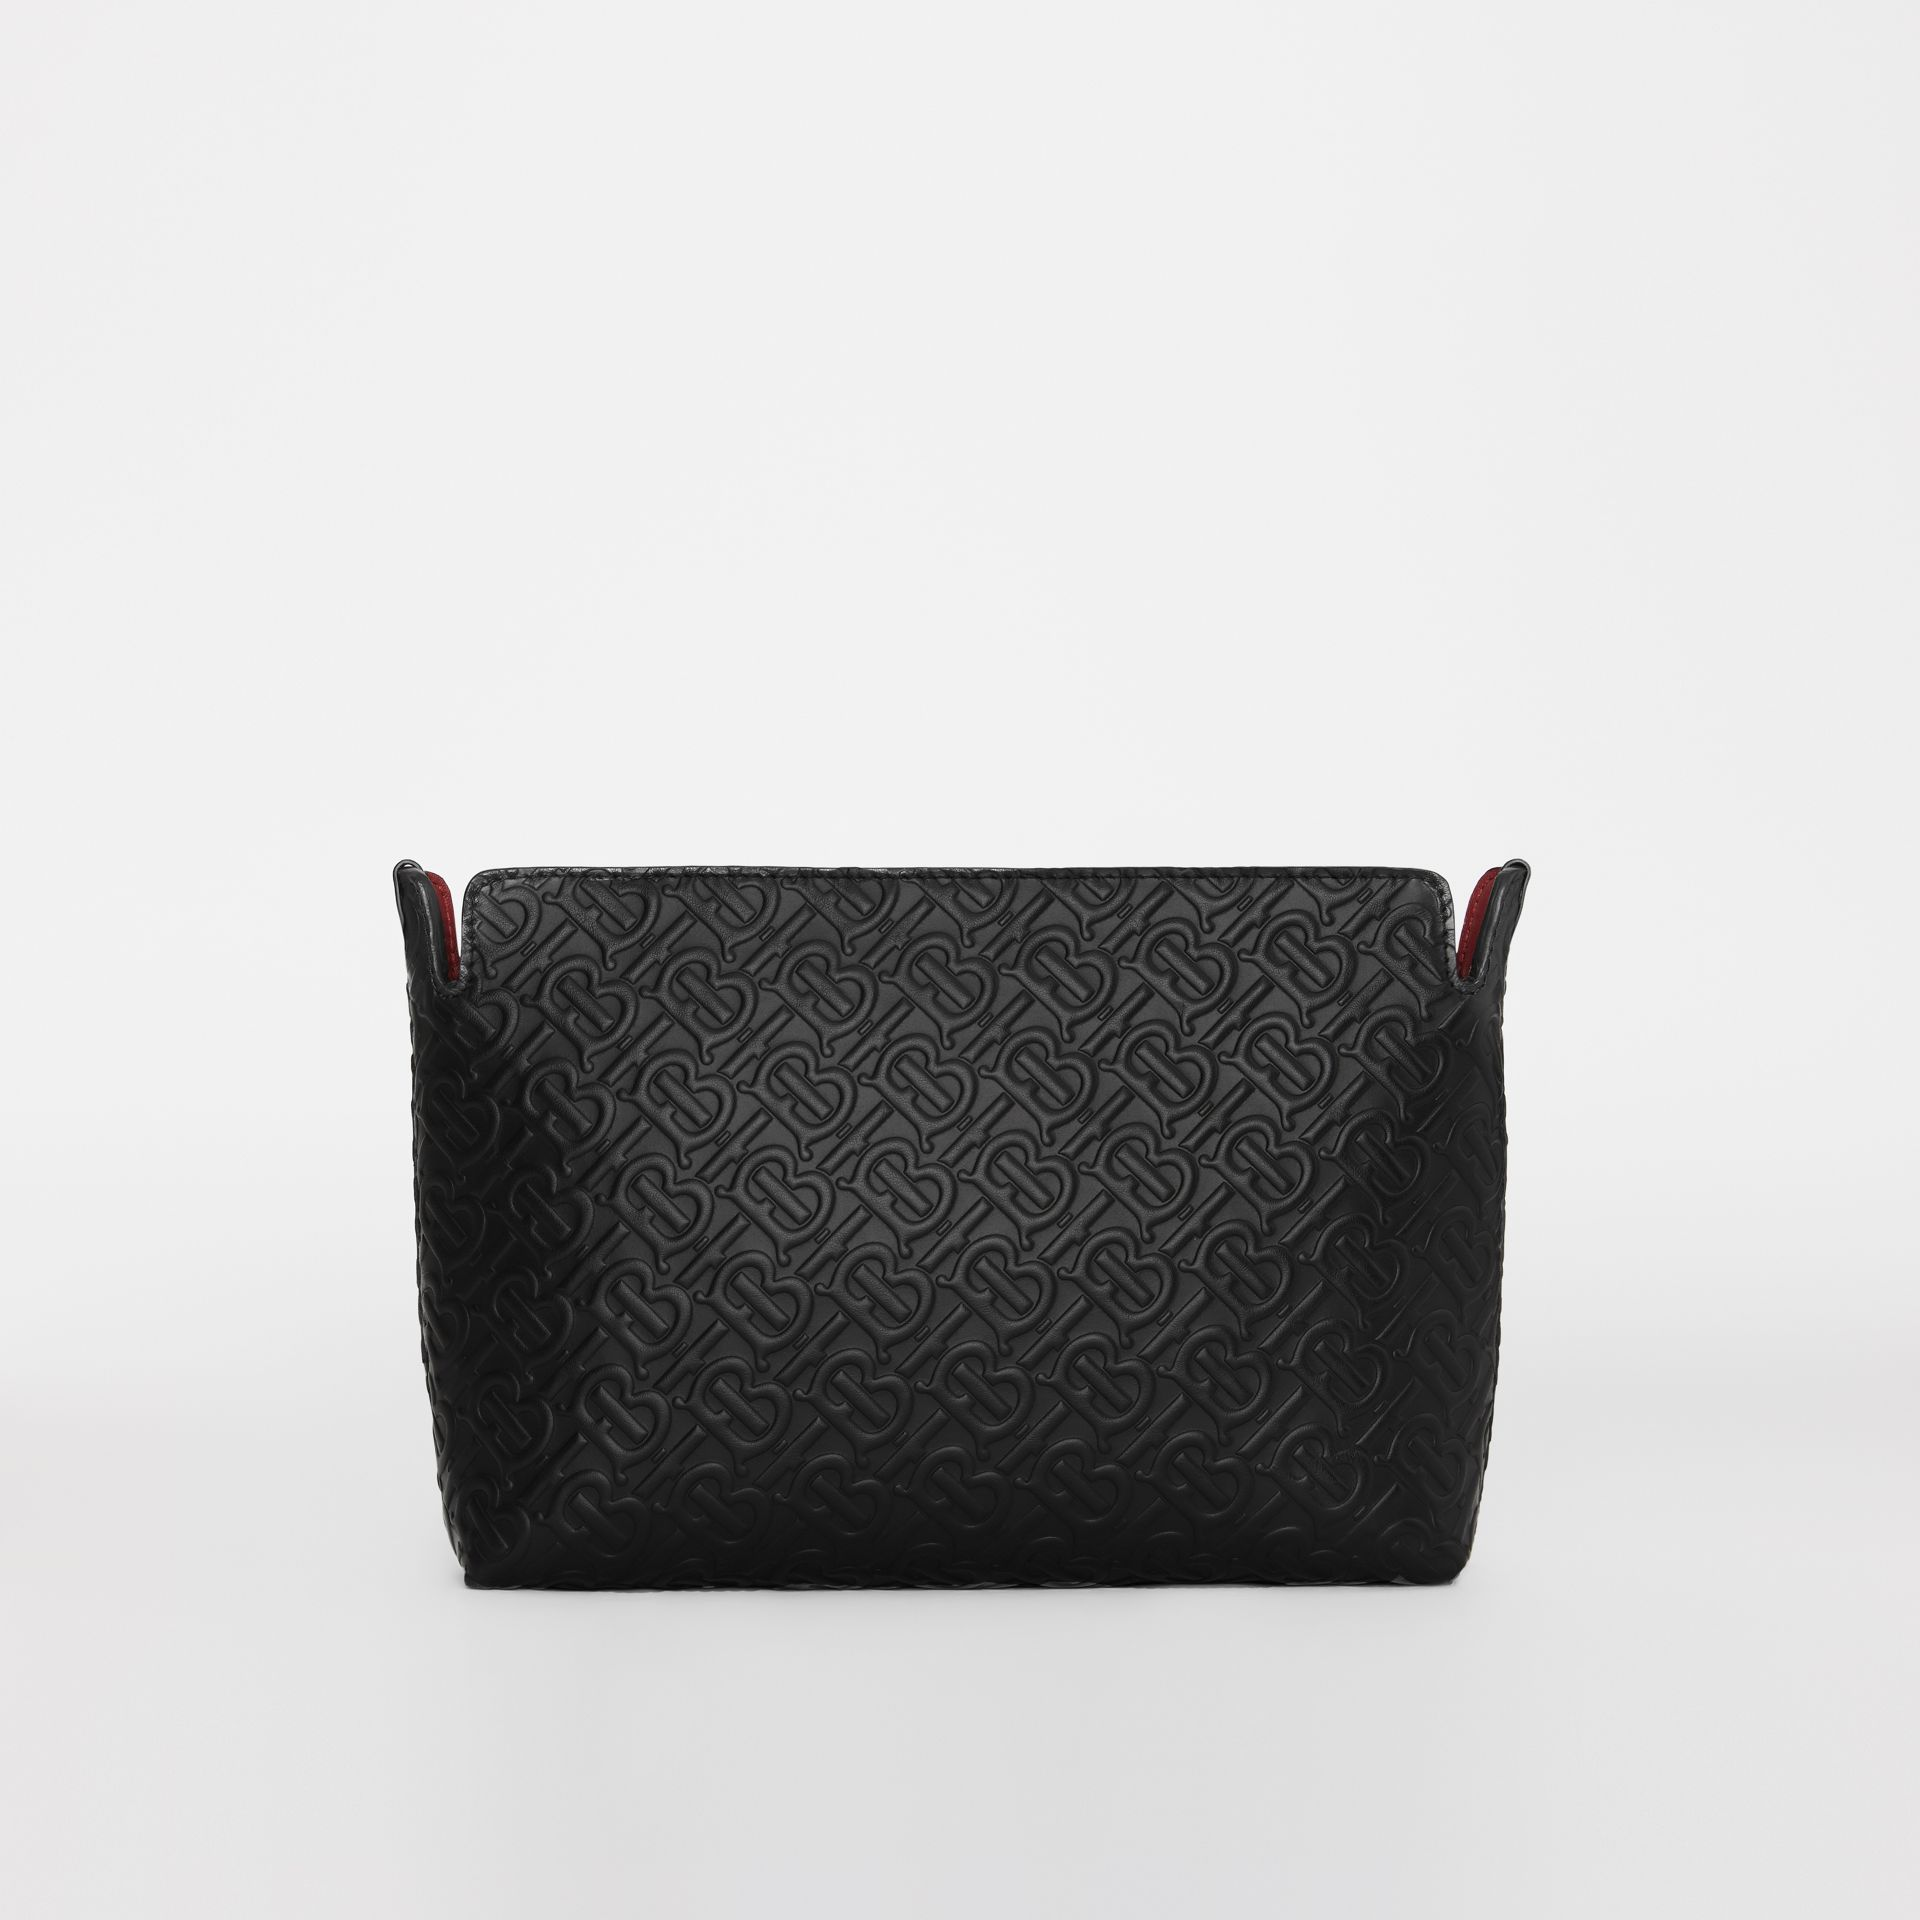 Medium Monogram Leather Clutch in Black - Women | Burberry - gallery image 4